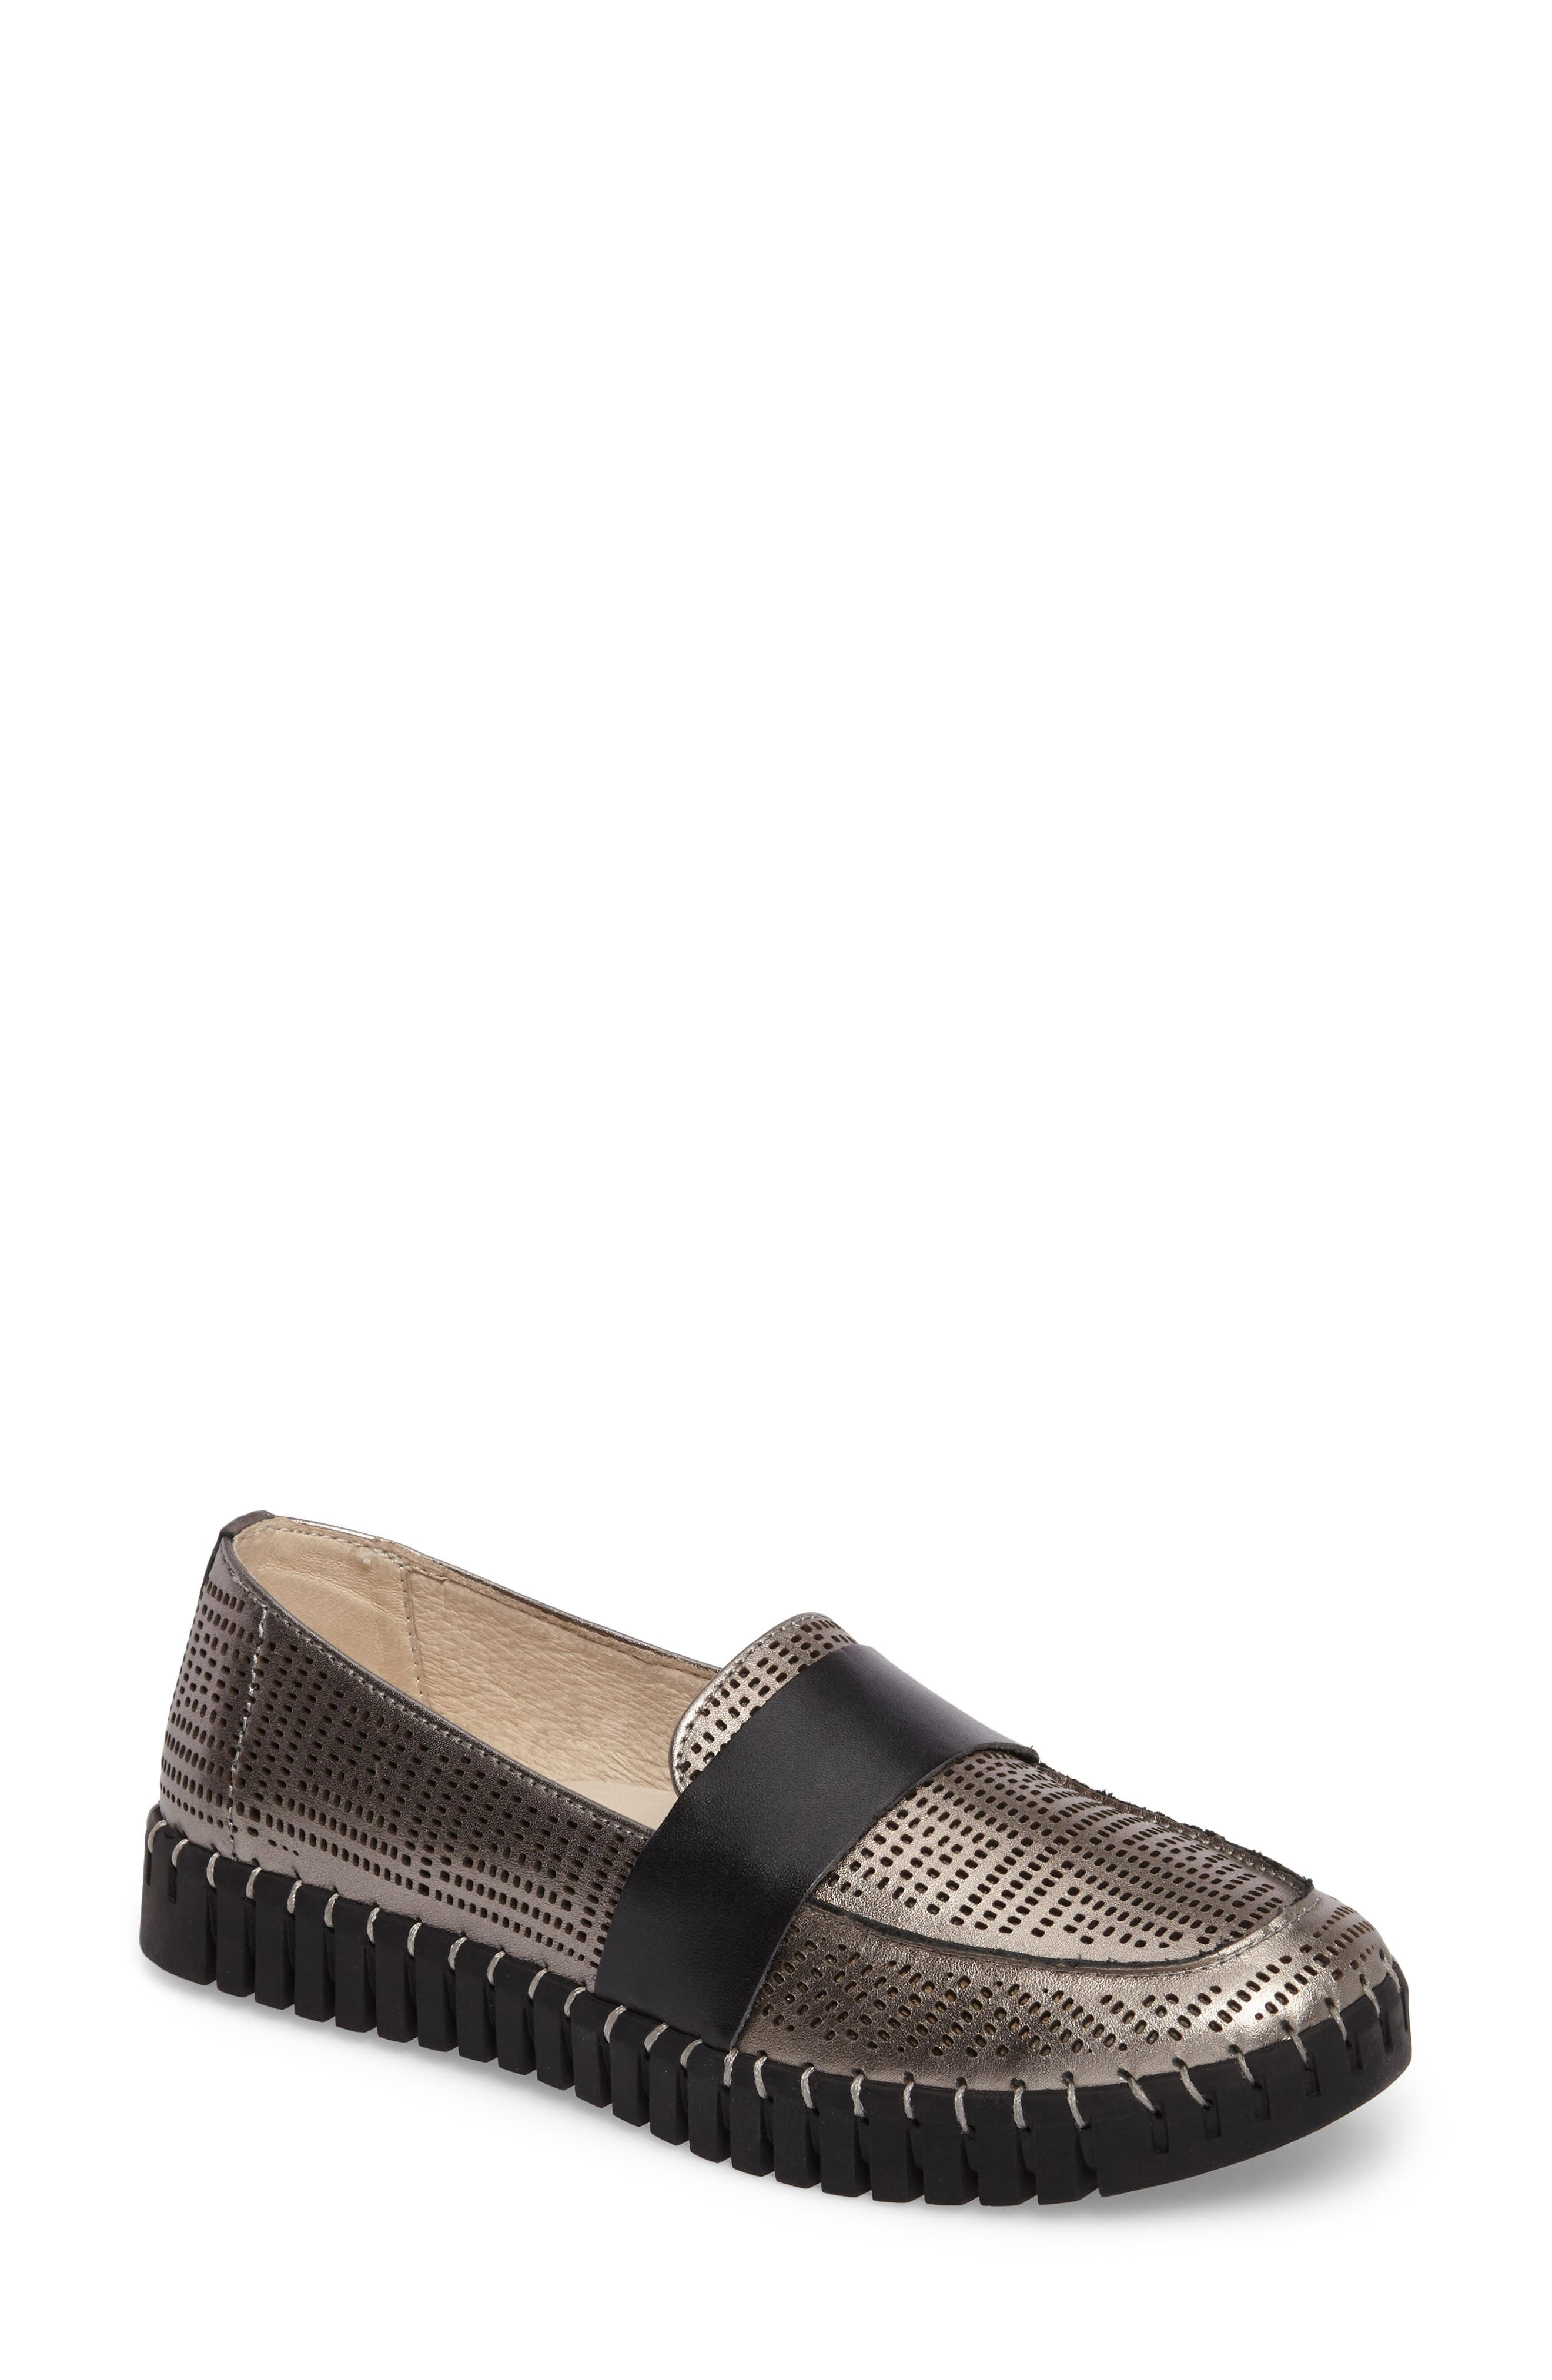 TW74 Perforated Flat,                         Main,                         color, GUNMETAL LEATHER